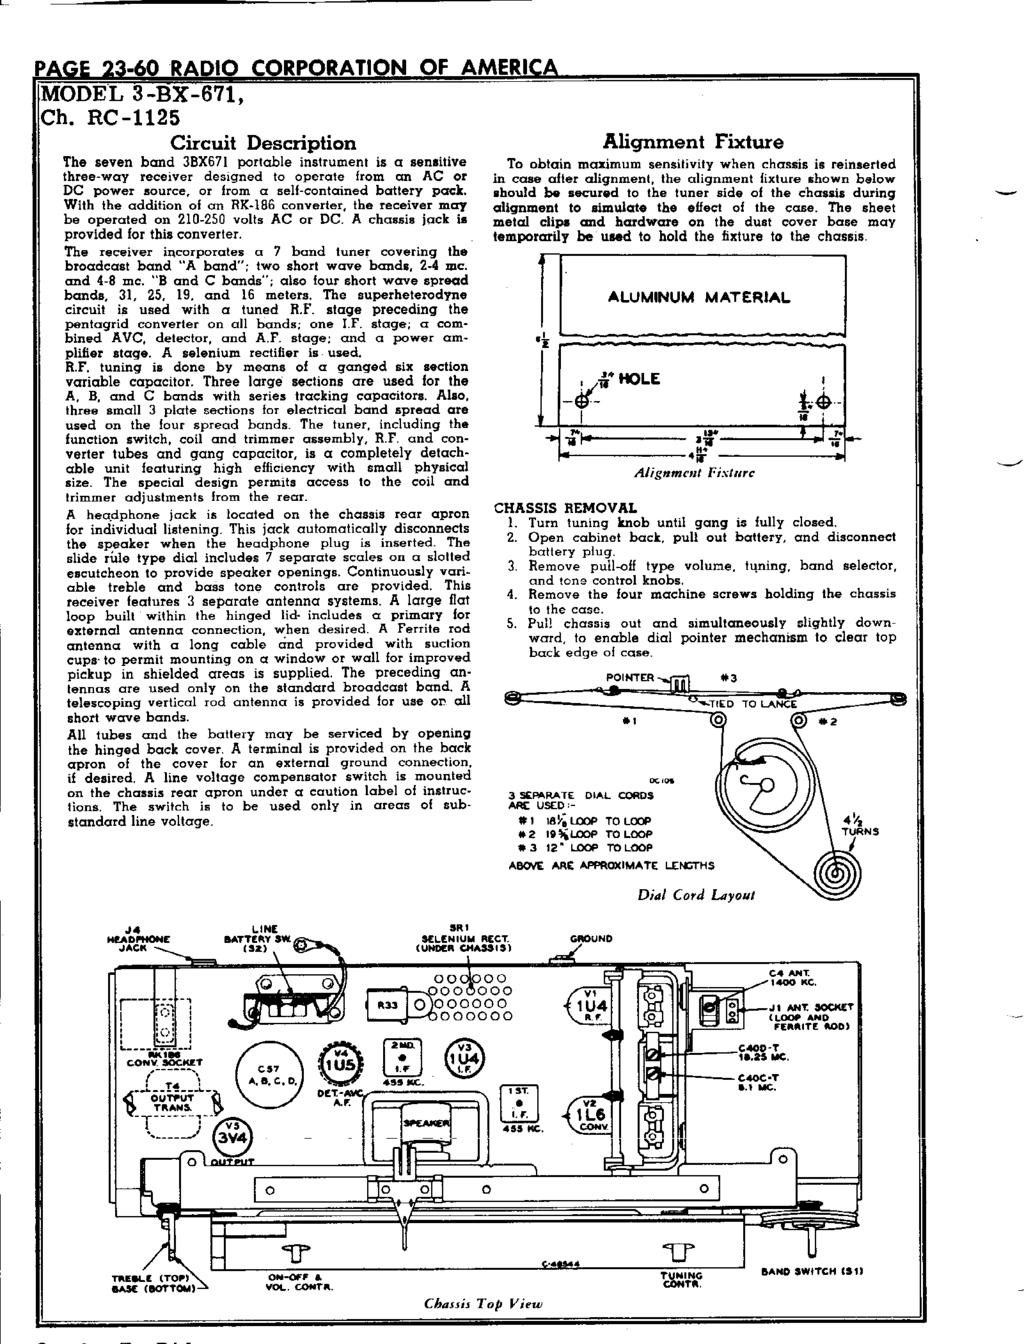 Packard Bell Page 2 Model 6 Tube Complement Pdf Phet Circuit Construction Kit Dc Only